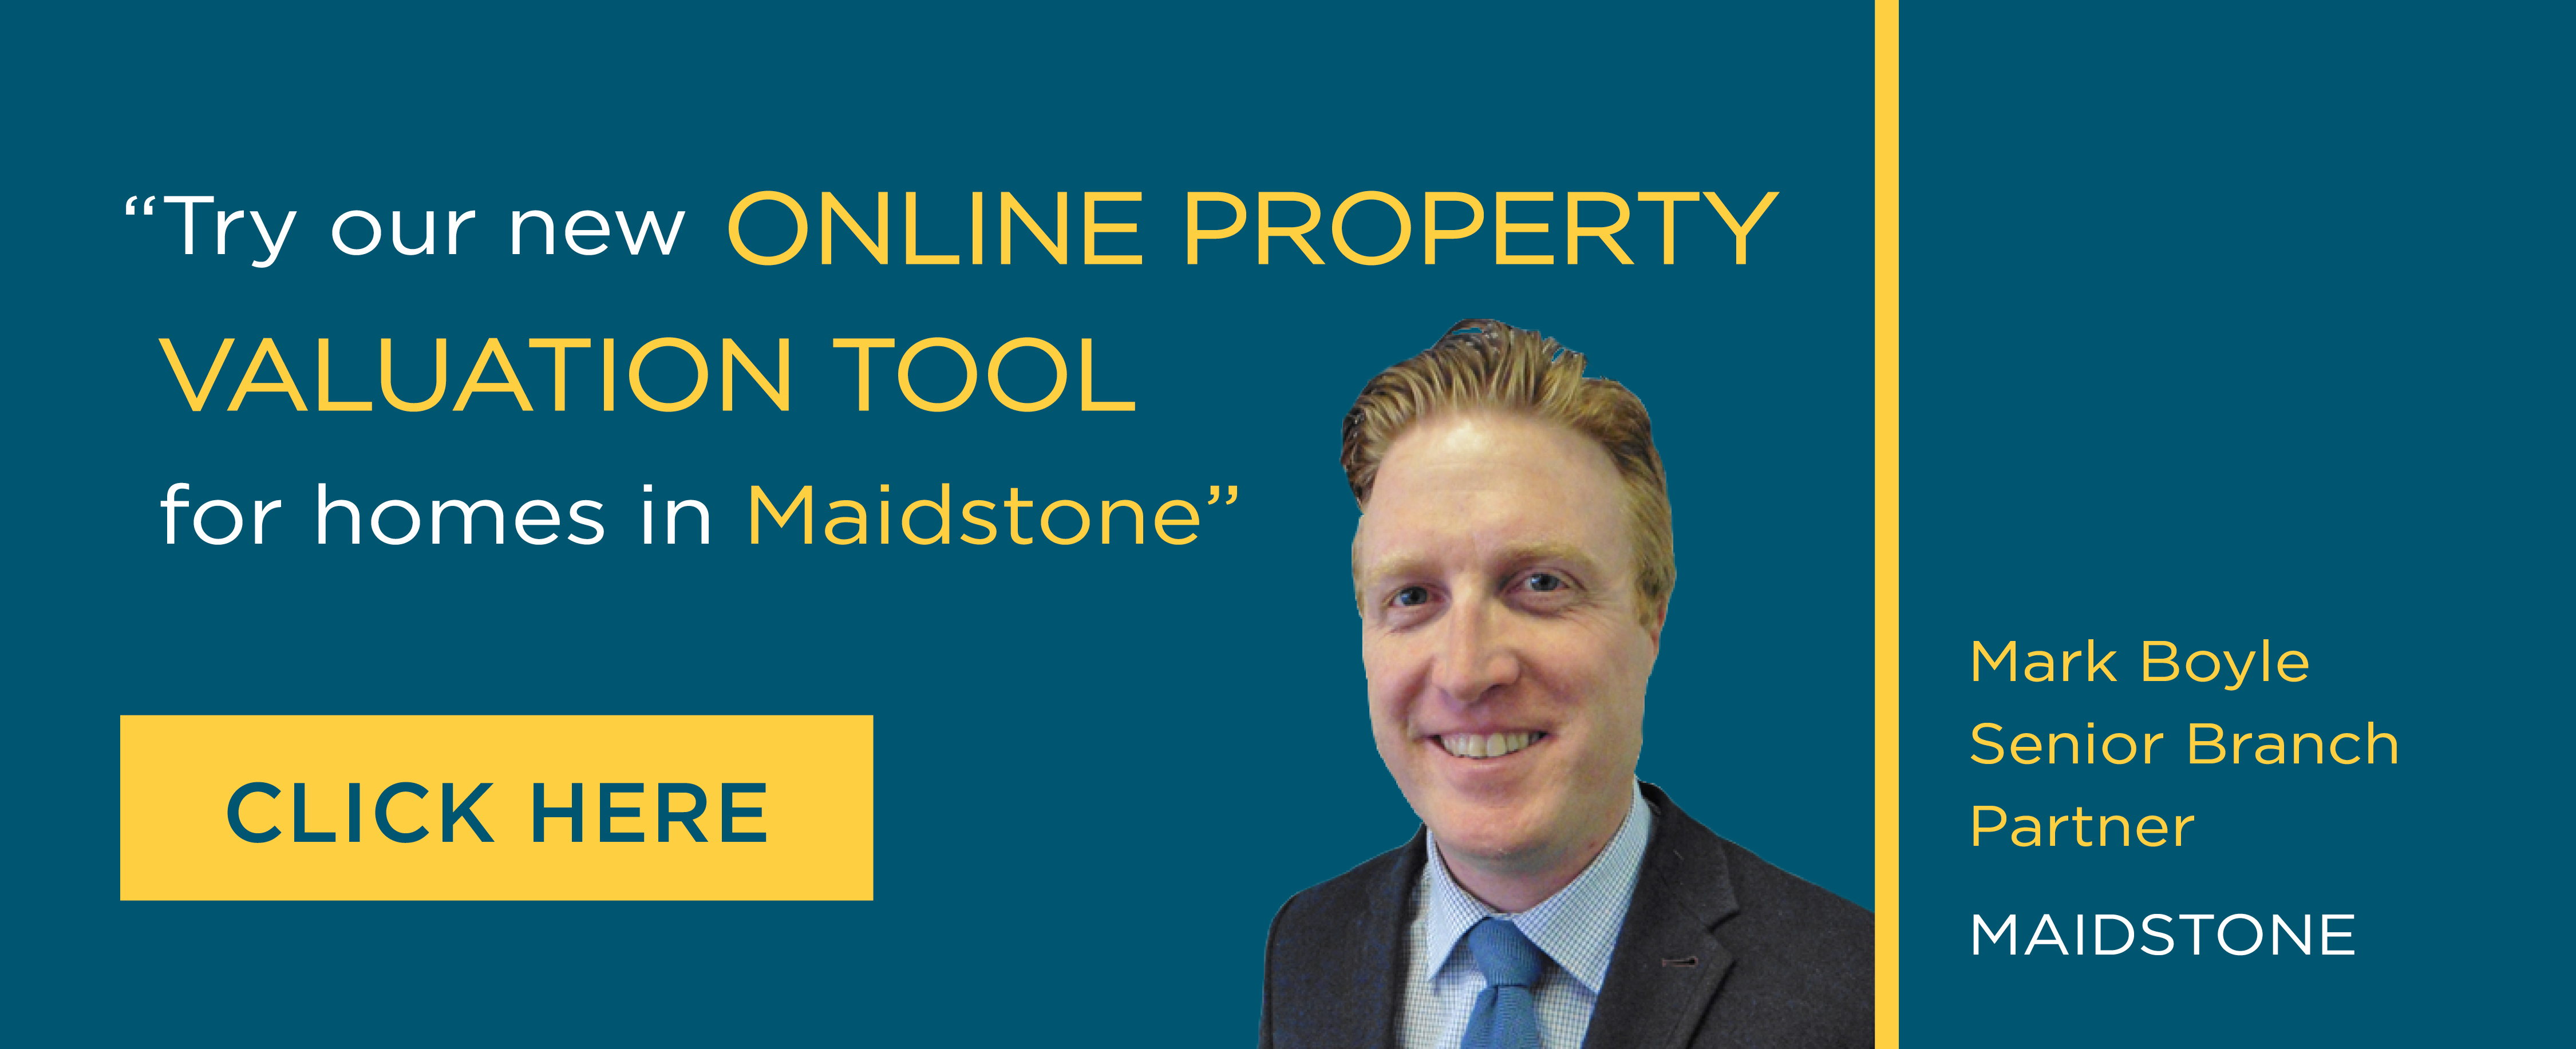 Online Valuation Tool website banner Maidstone